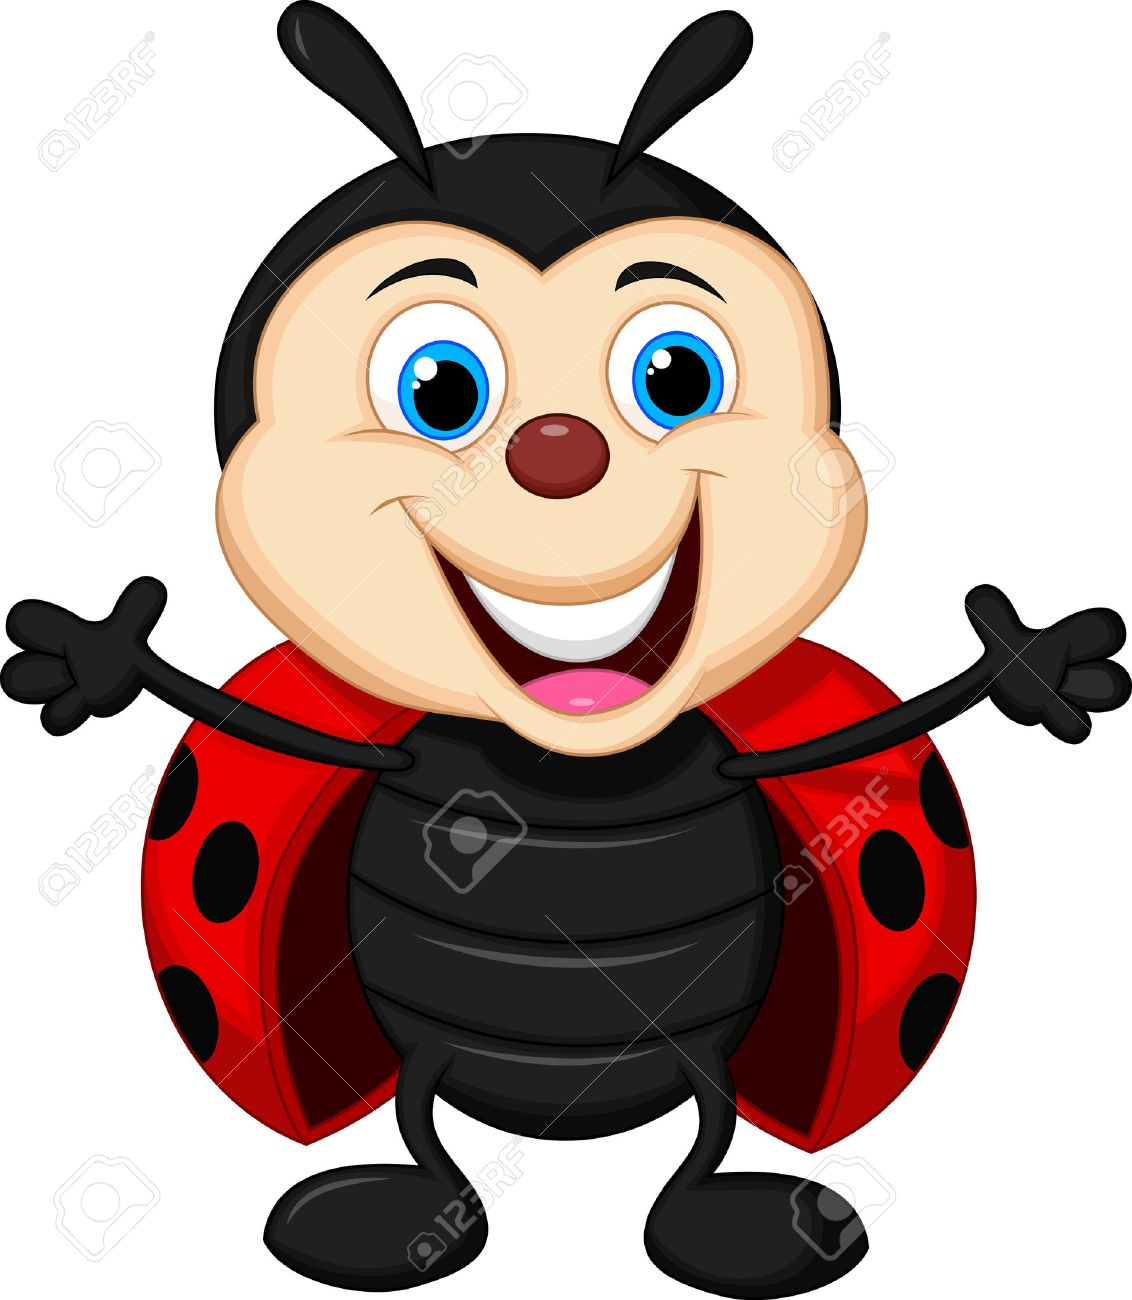 A Cartoon Ladybug happy ladybug cartoon